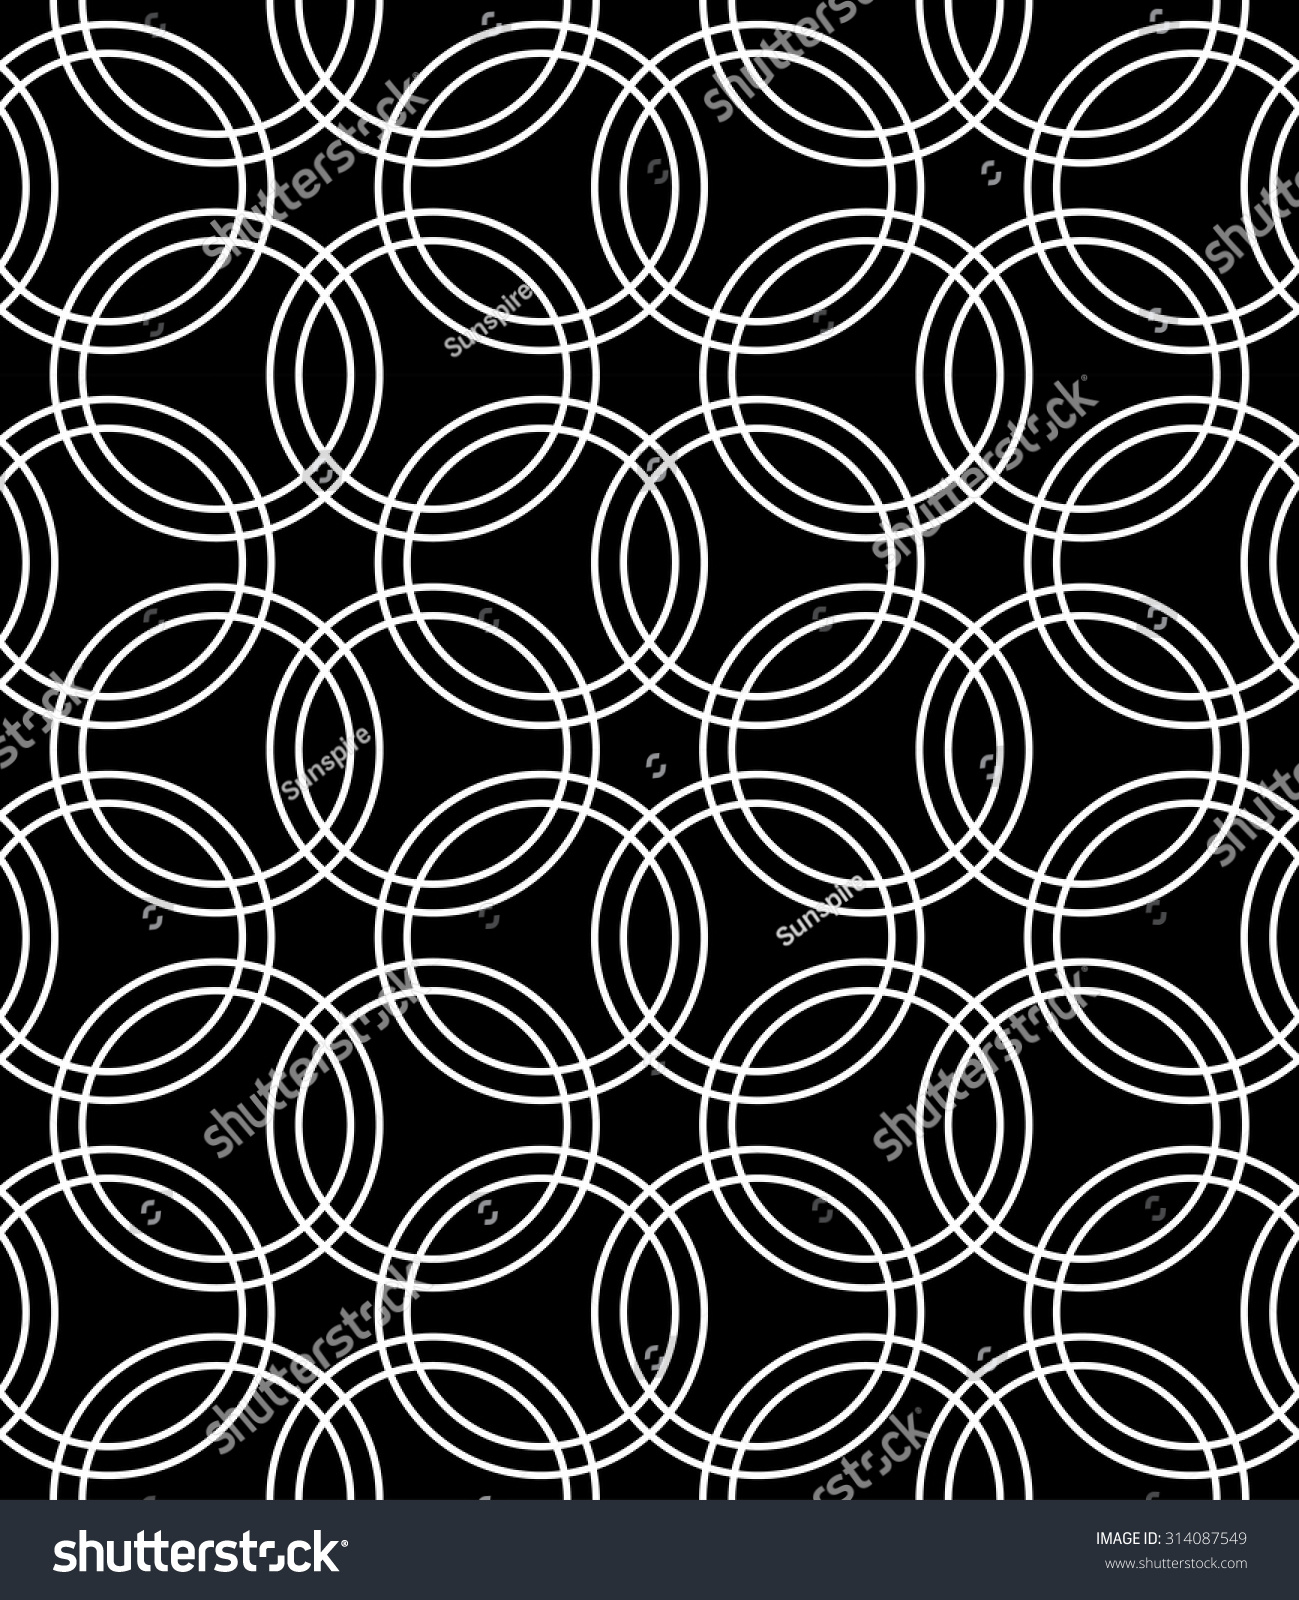 Bed sheets texture seamless - Vector Modern Seamless Pattern Flowers Black And White Textile Print Stylish Background Abstract